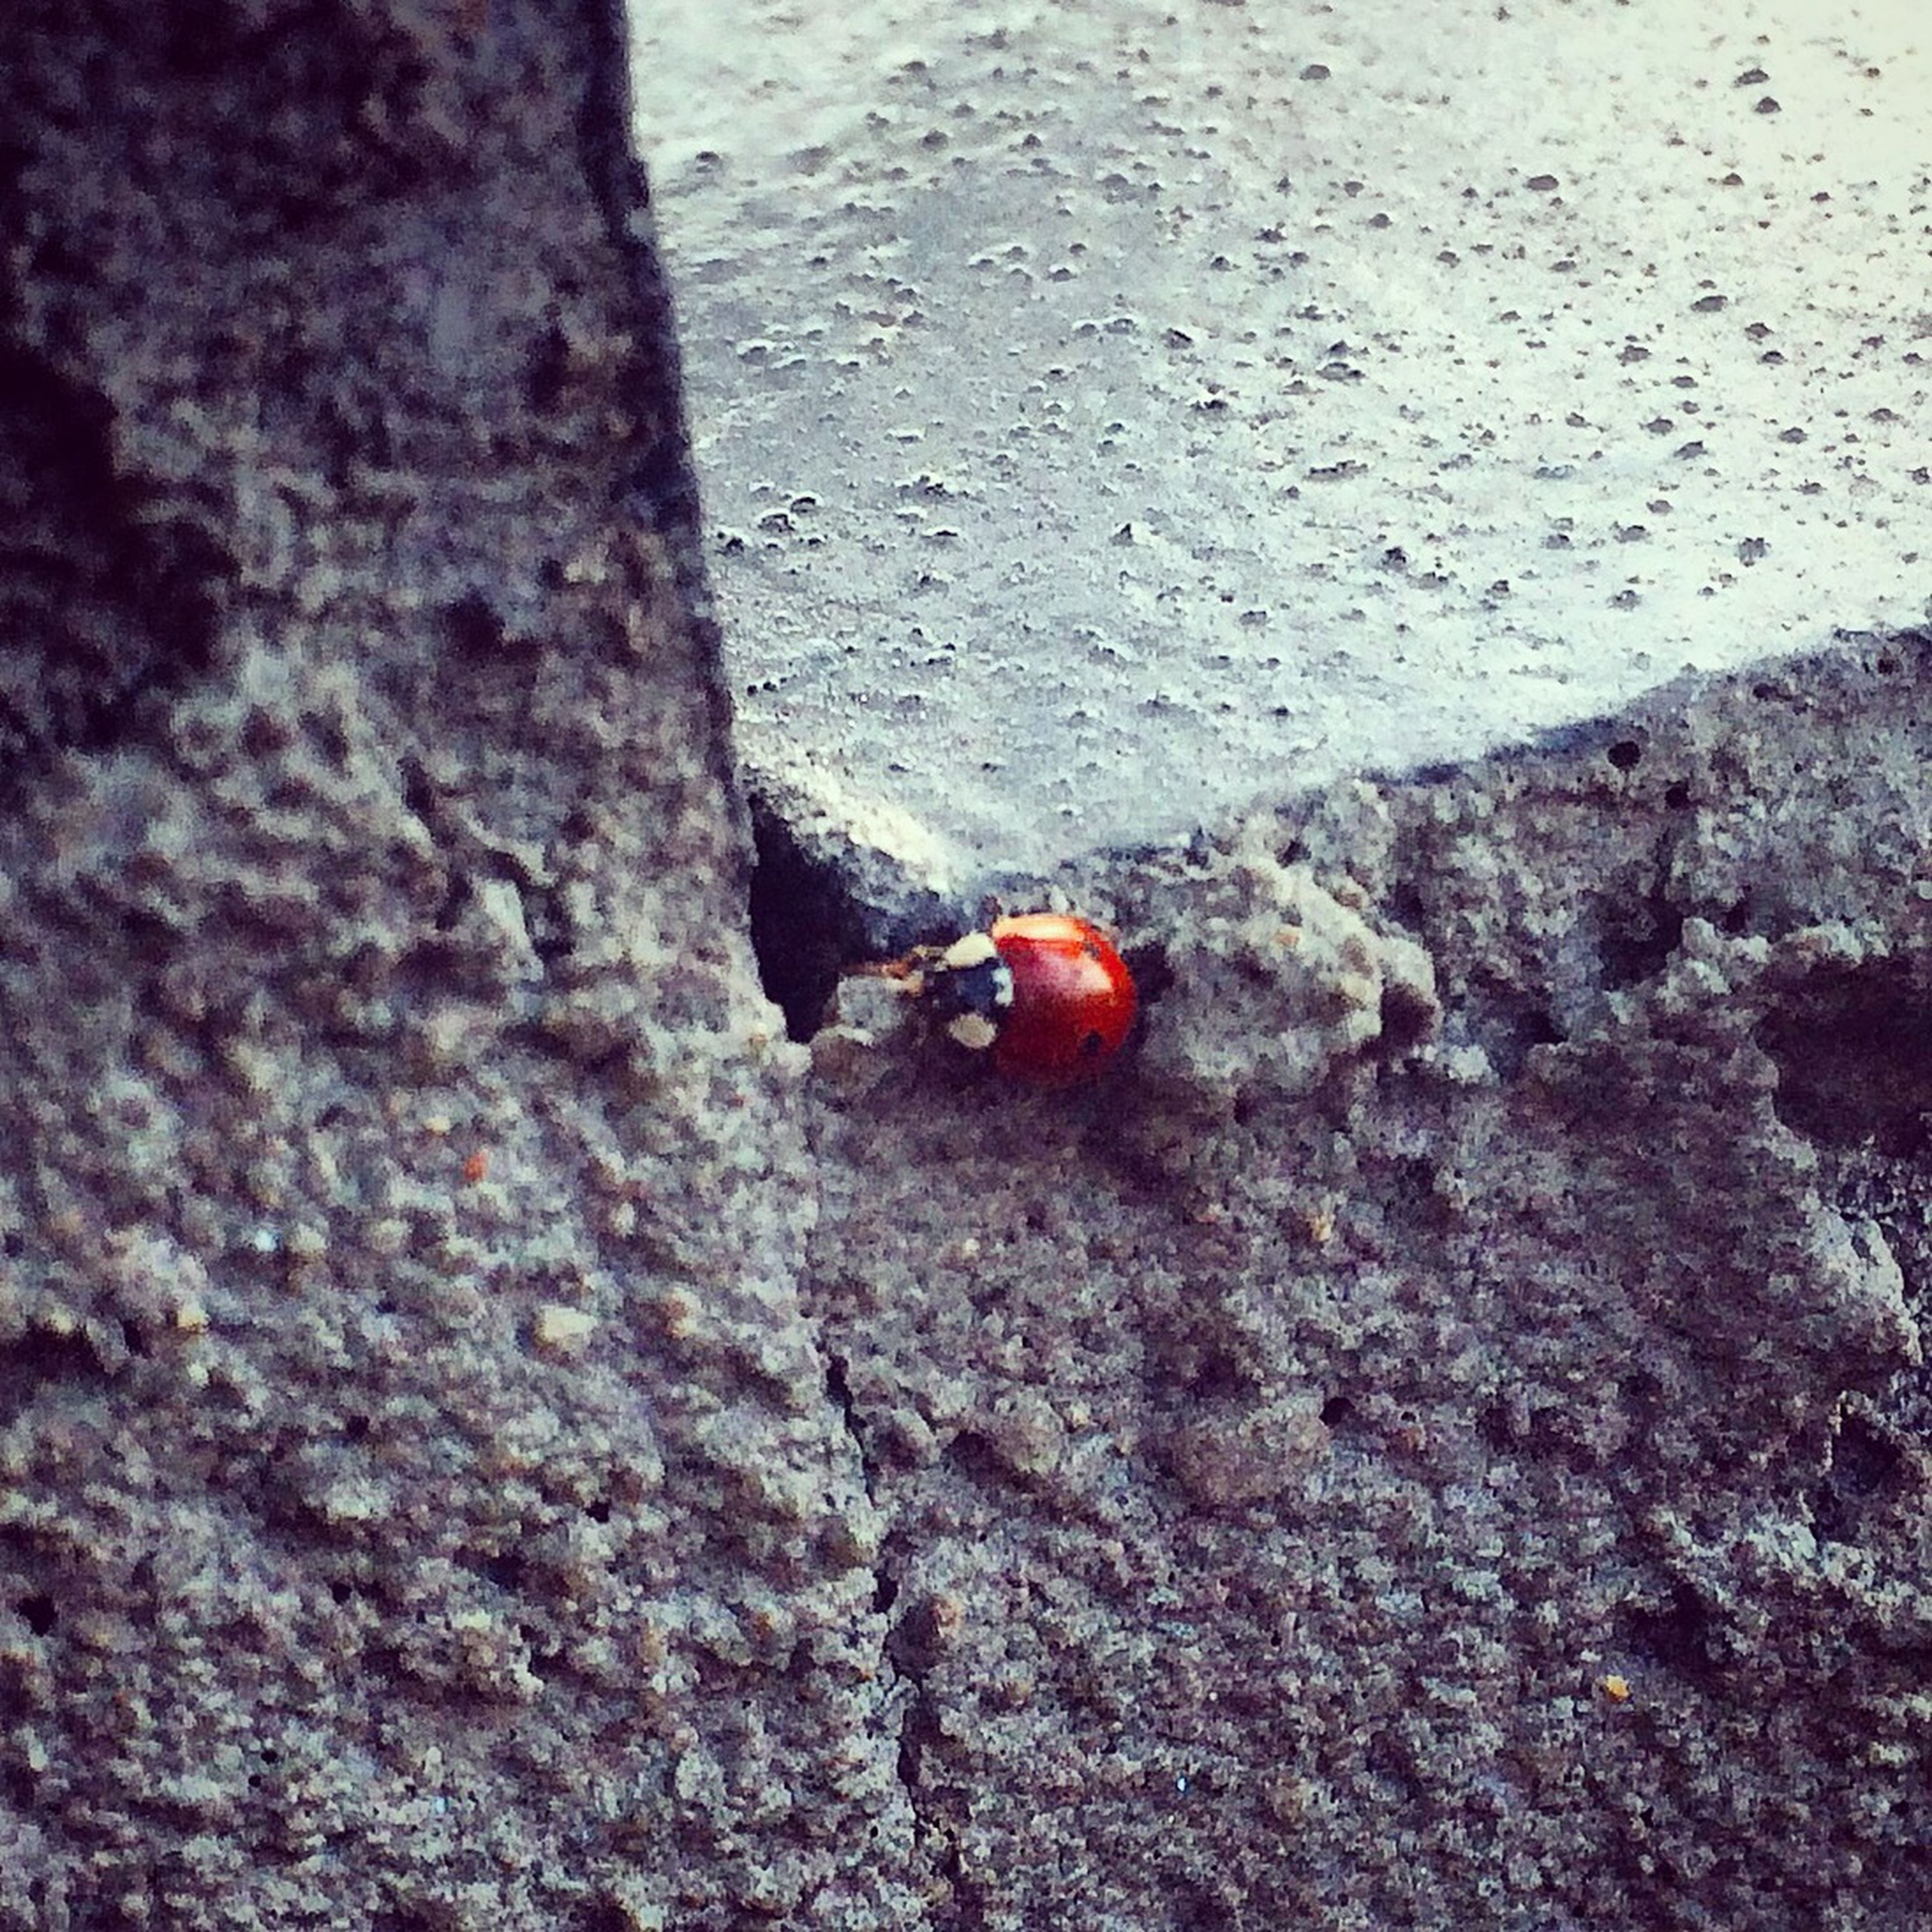 insect, one animal, animal themes, textured, rock - object, animals in the wild, wildlife, high angle view, ladybug, red, nature, rough, full length, day, outdoors, close-up, rock, selective focus, no people, sunlight